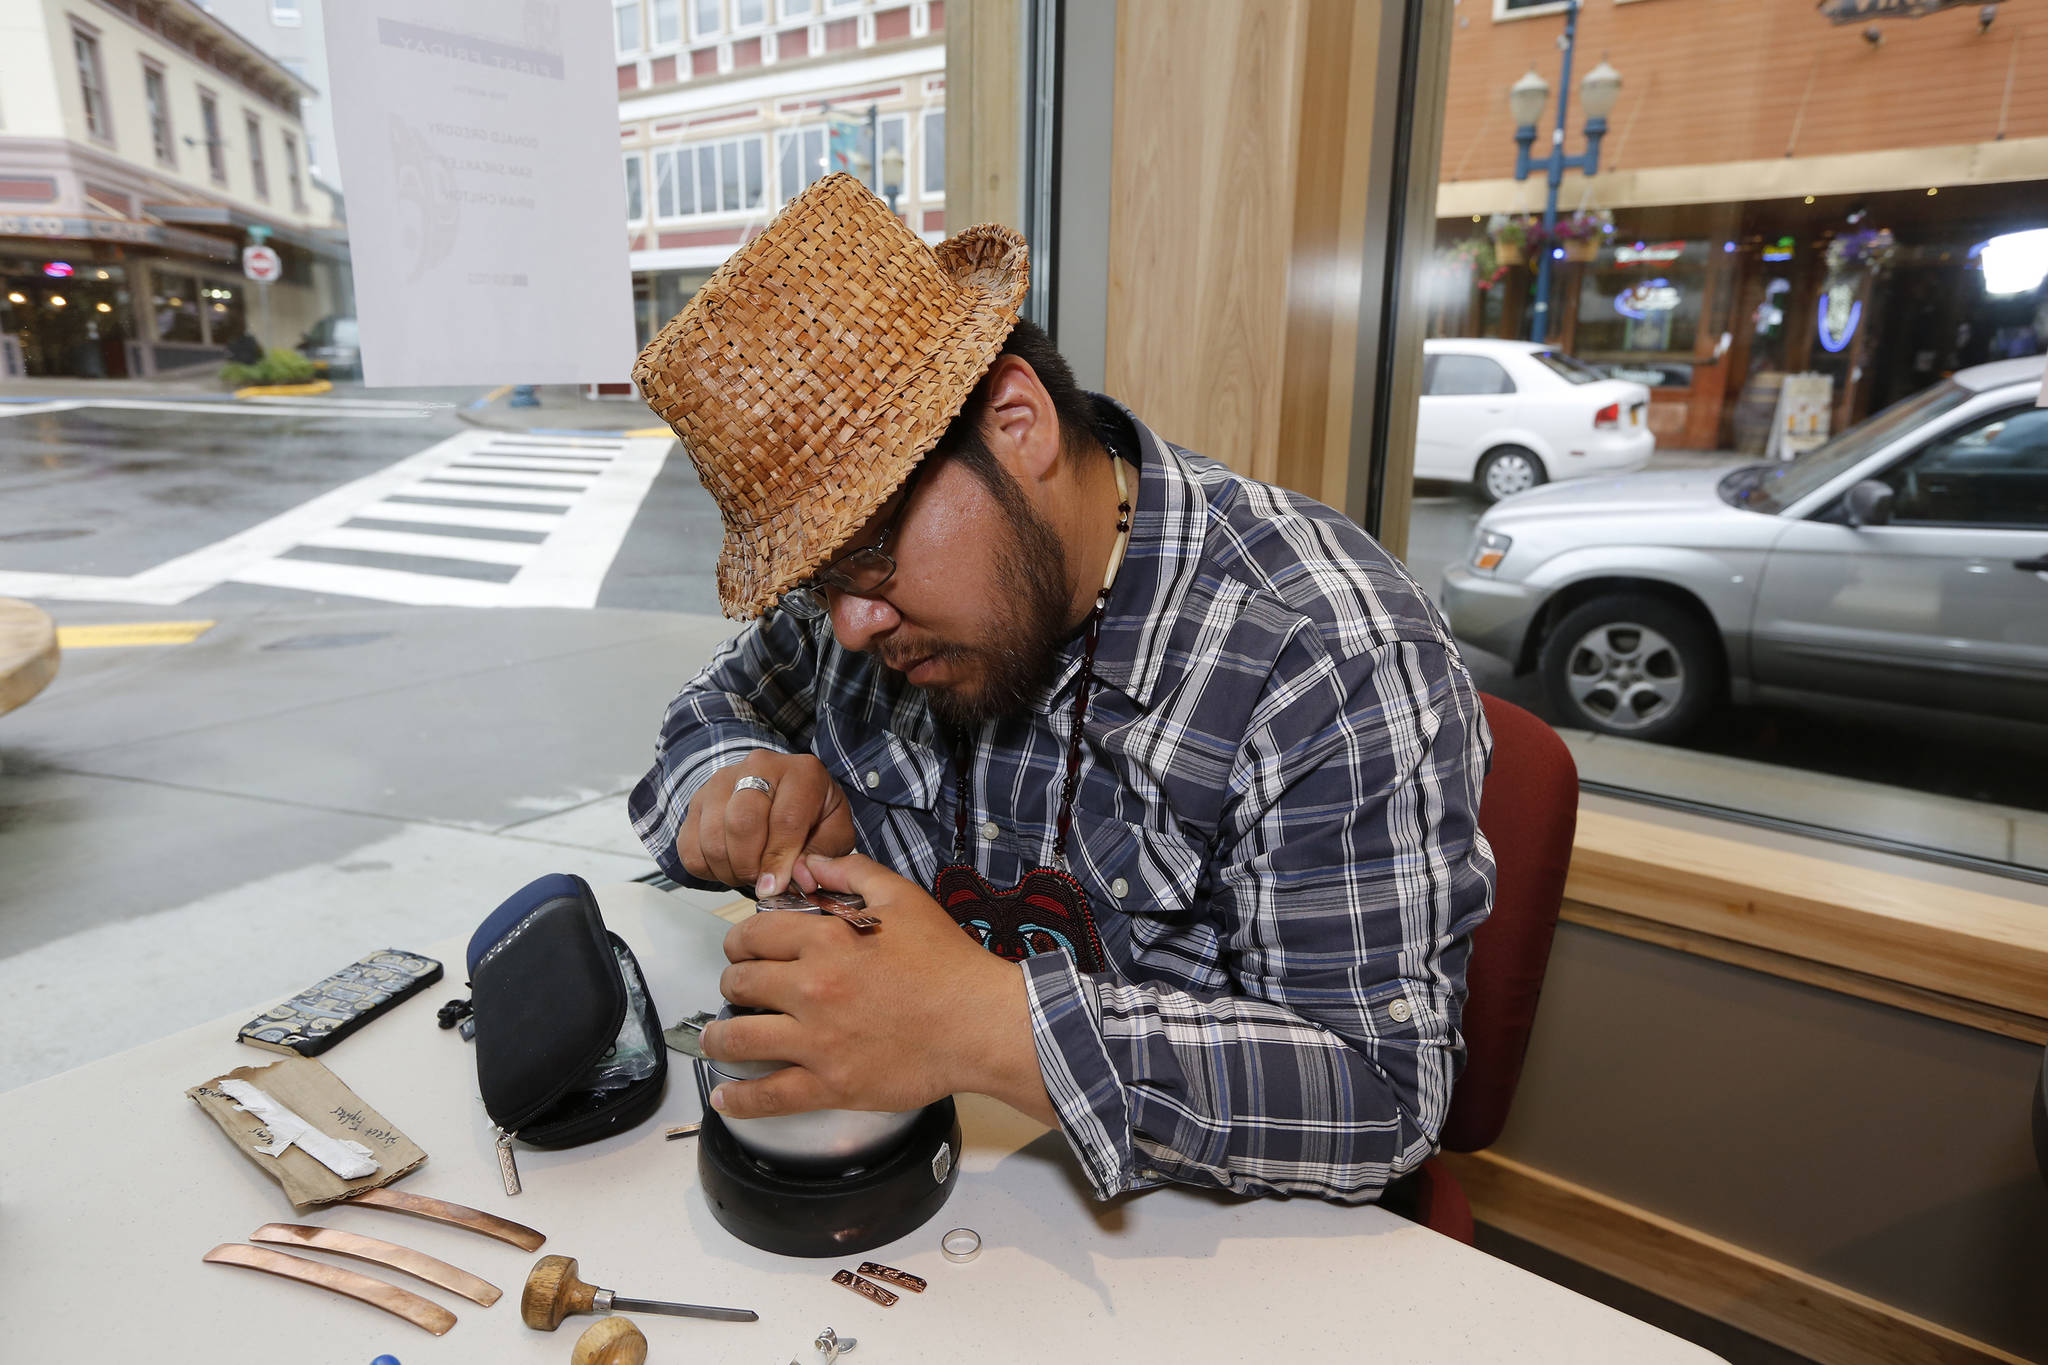 Samuel Sheakley, one of SHI's featured artists for First Friday, works on a piece of jewelry. Photo by Brian Wallace.